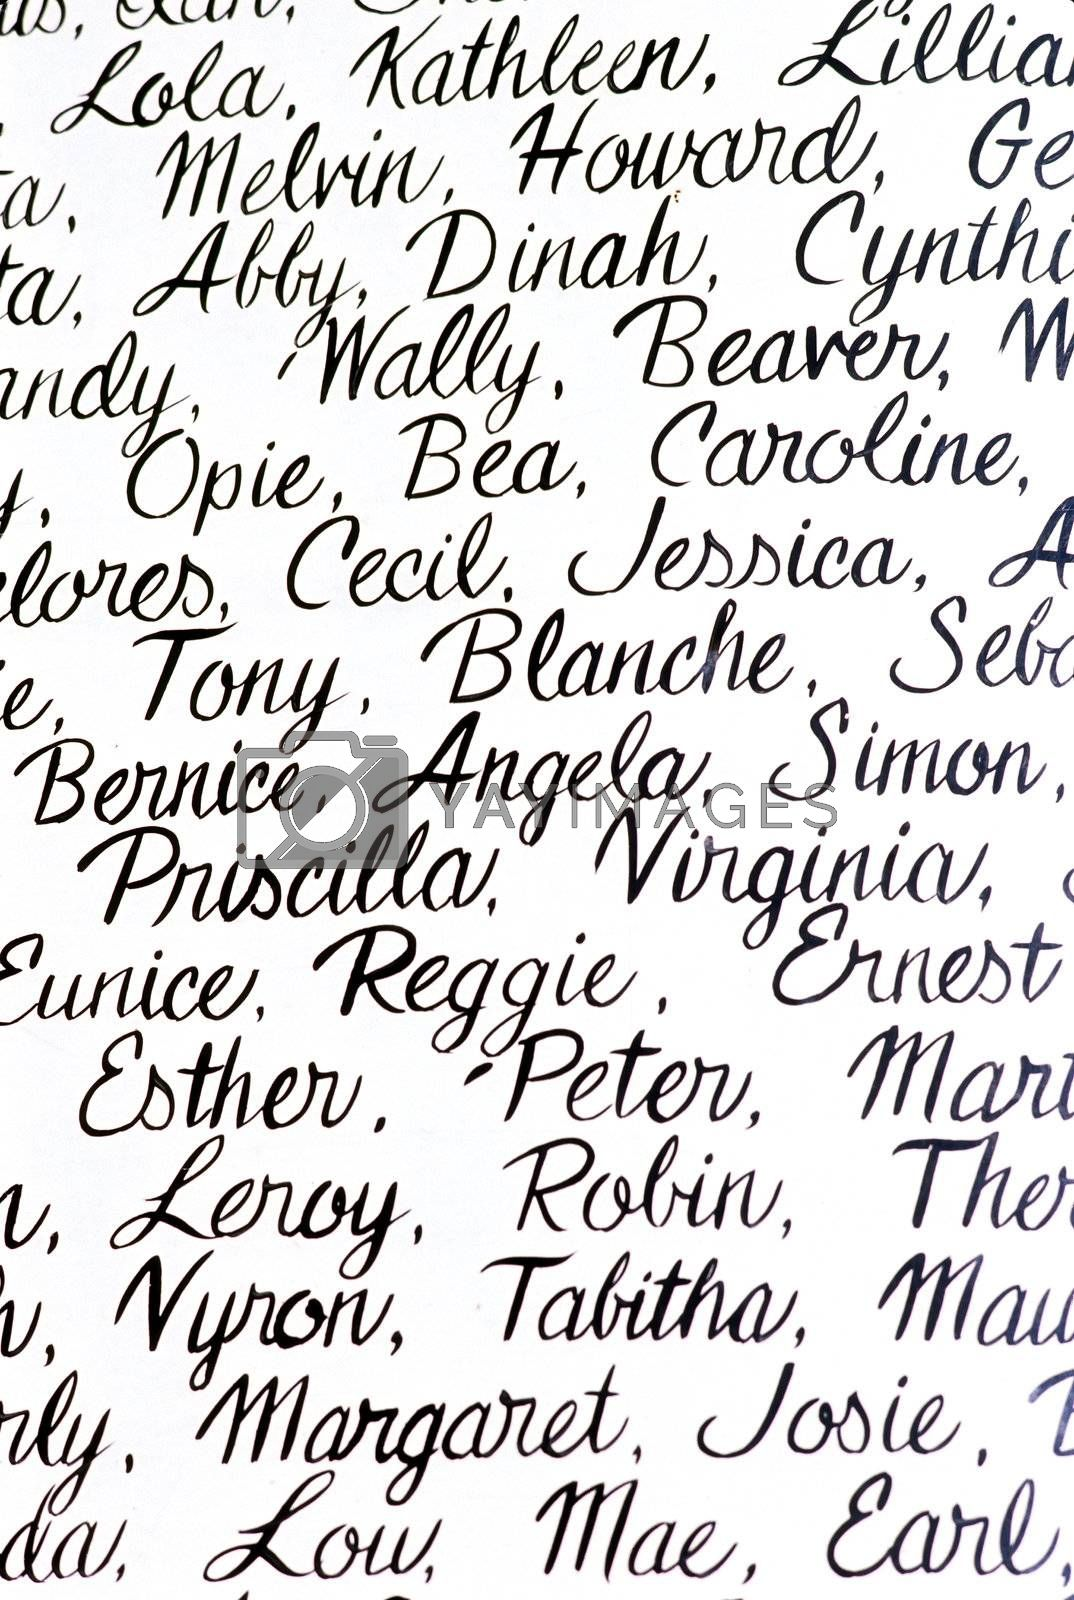 White background with people names written in cursive handwriting.